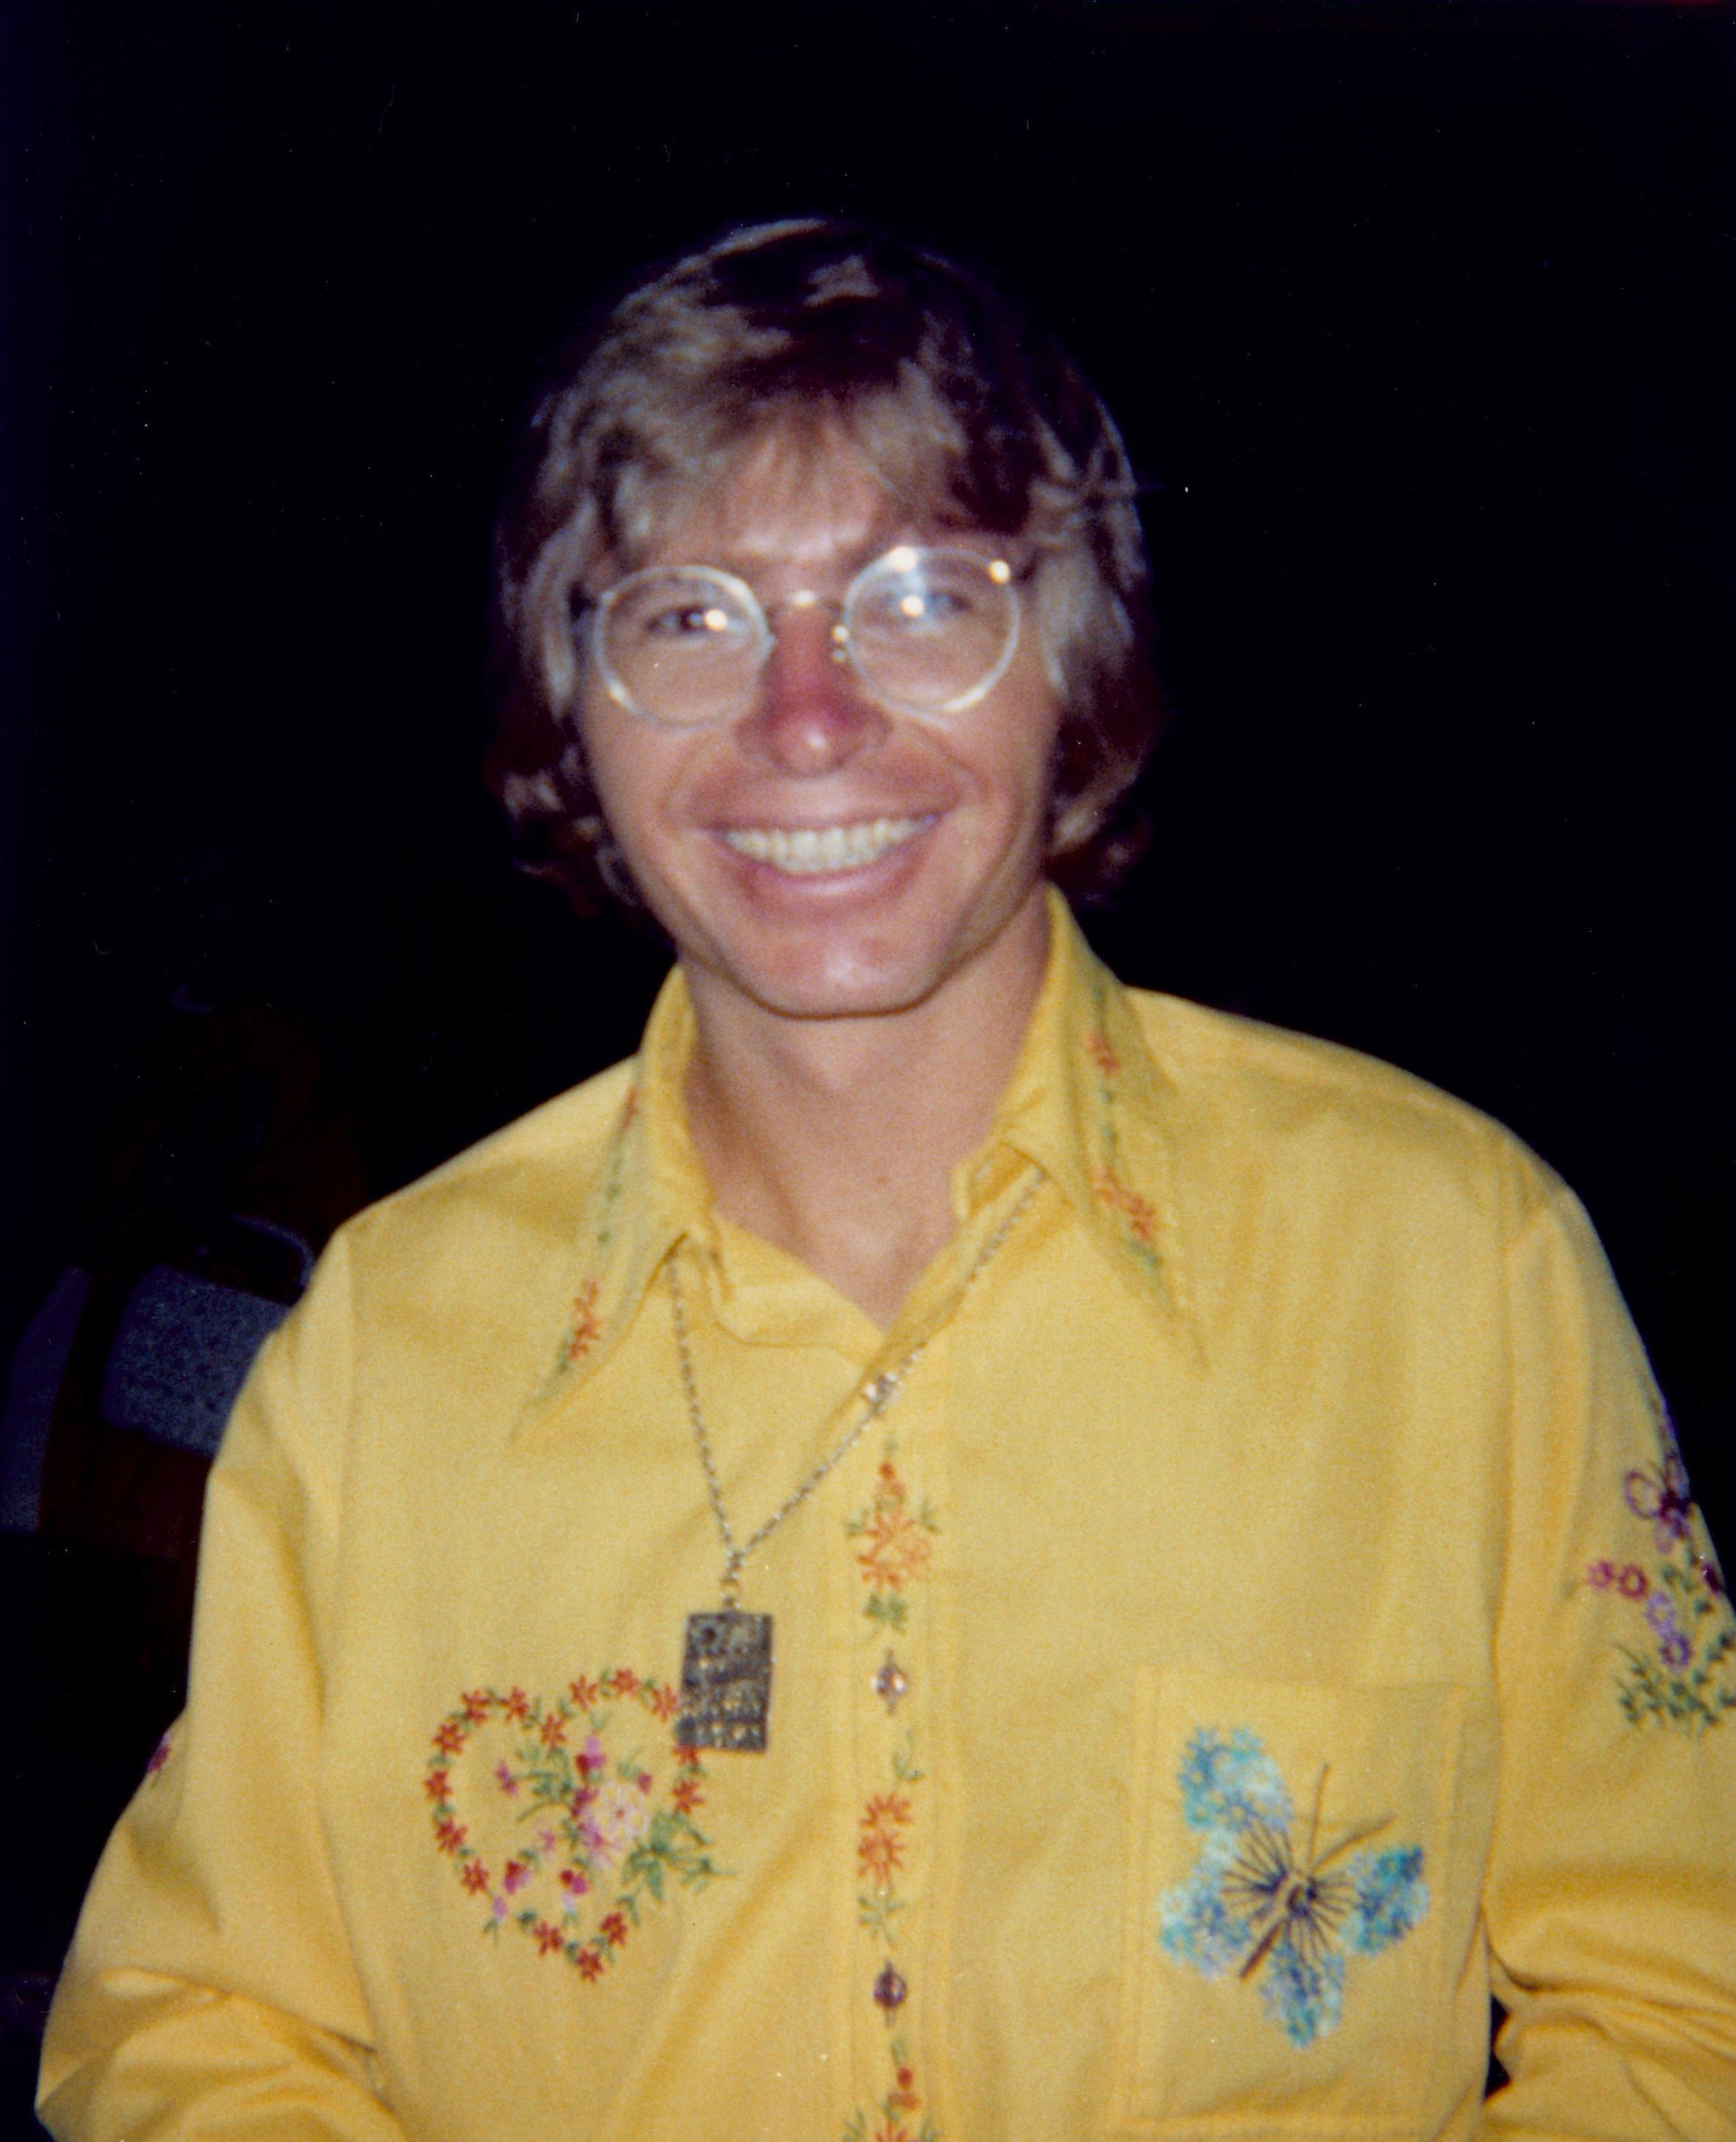 John Denver Wallpapers